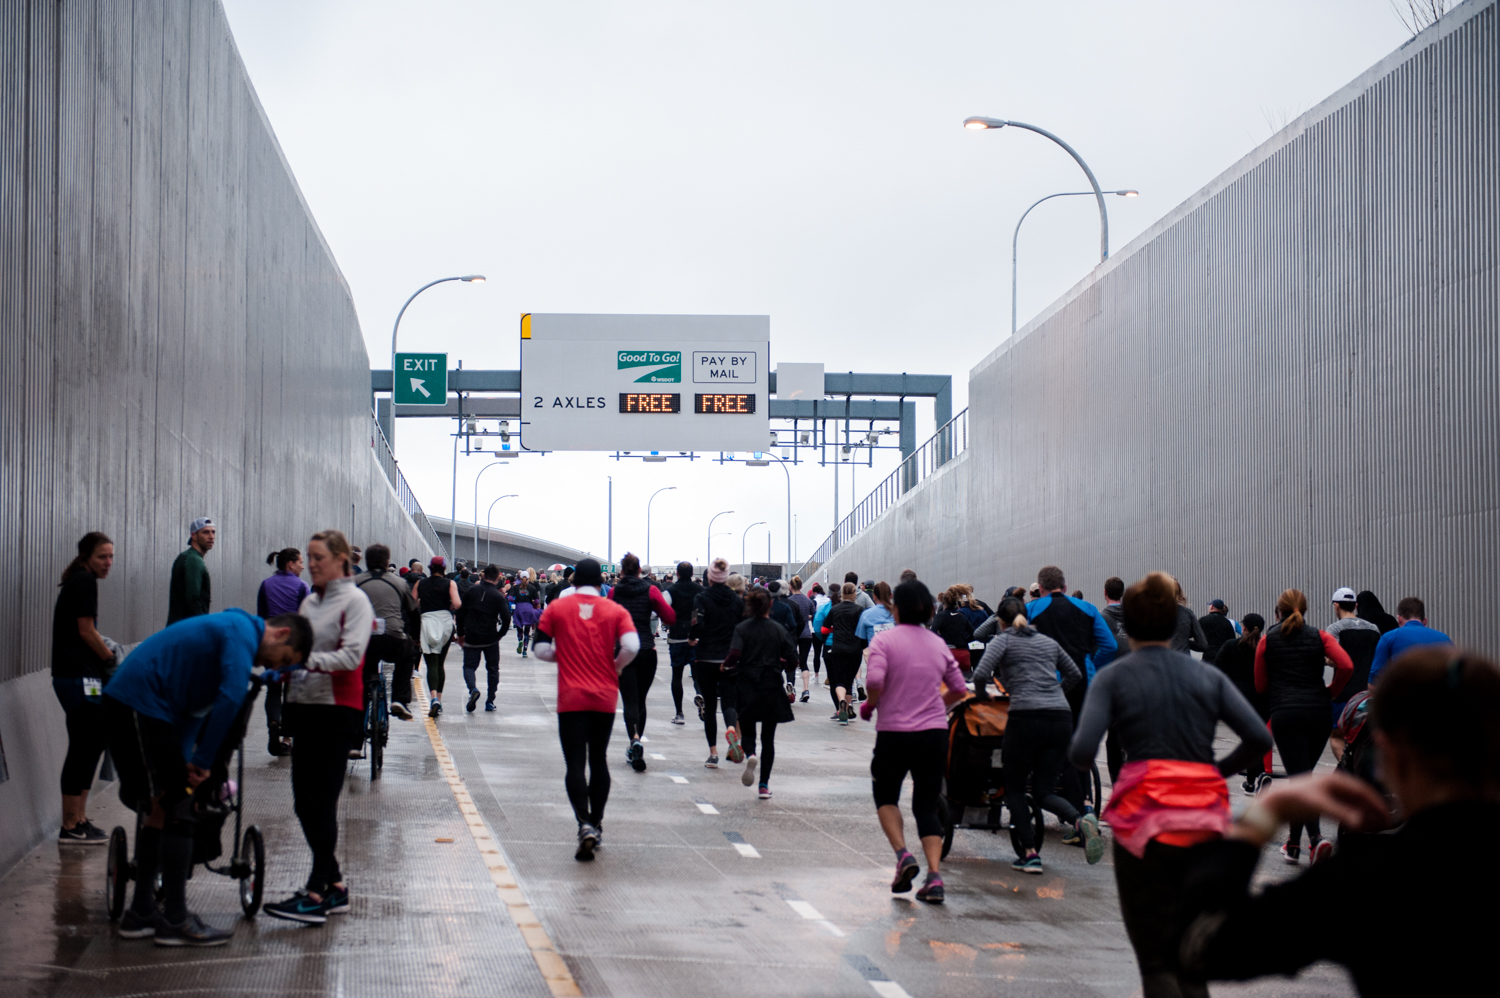 <p>It's here! After weeks of traffic and years of anticipation - over 100,000 are anticipated to come out and celebrate the opening of the SR 99 Tunnel with multiple festivities. First off was the 8K Run/Walk through the tunnel and viaduct, for with 25,000 registered - followed by a ribbon cutting ceremony, art festival and concert. Check out more info at{&nbsp;}www.99stepforward.com to join in the fun! (Image: Elizabeth Crook / Seattle Refined){&nbsp;}</p>